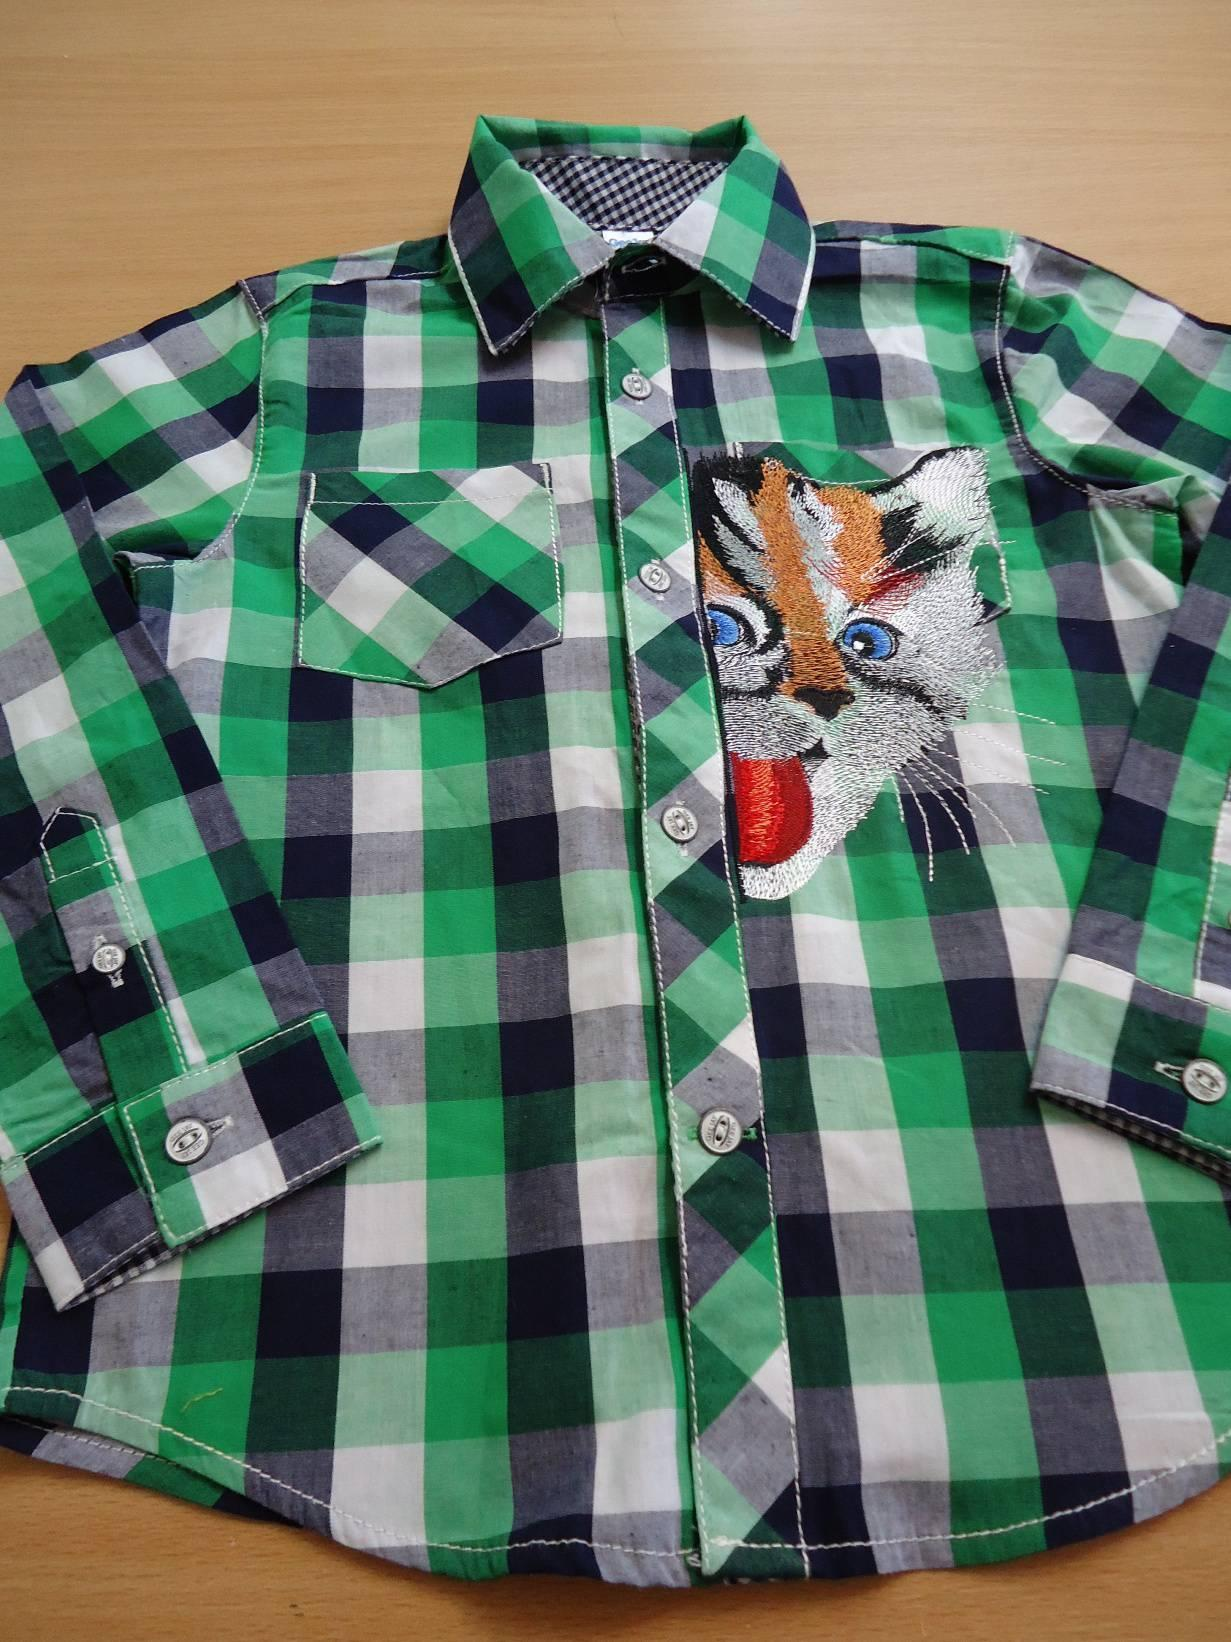 Embroidered men's shirt with kitty design